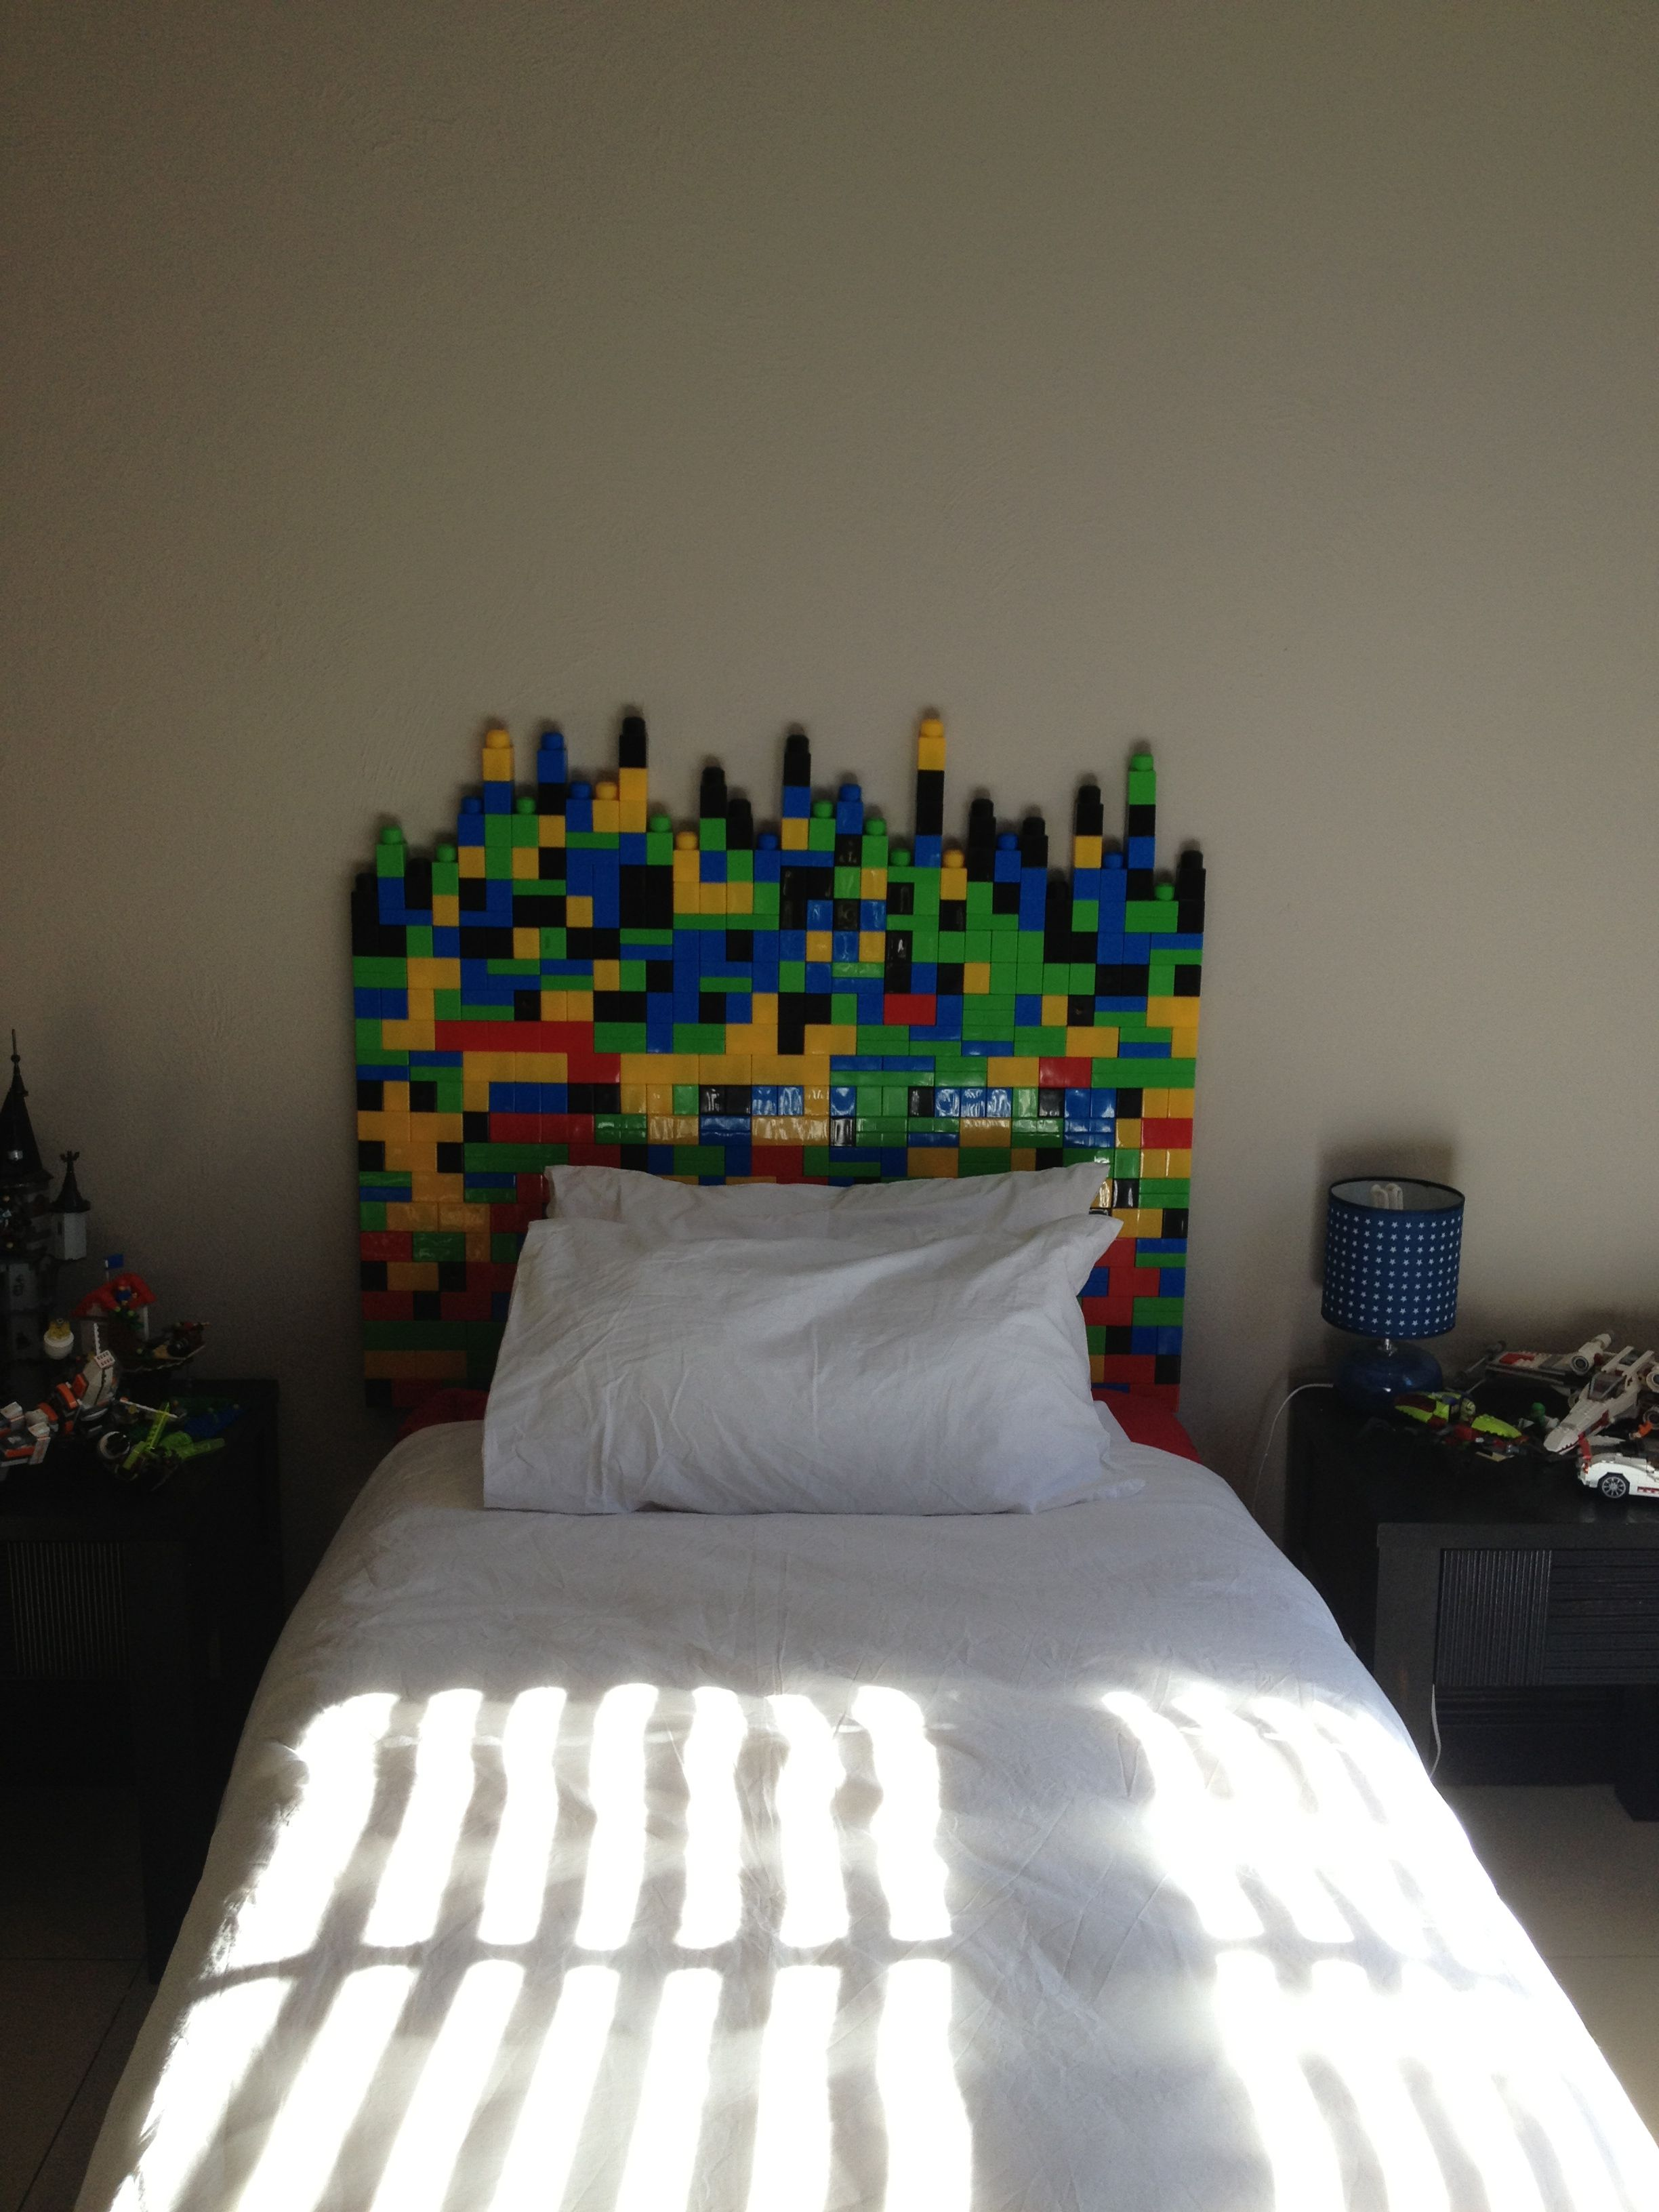 Room 2 Build Bedroom Kids Lego: Lego Headboard! My Son Is Obsessed With Lego So I Made